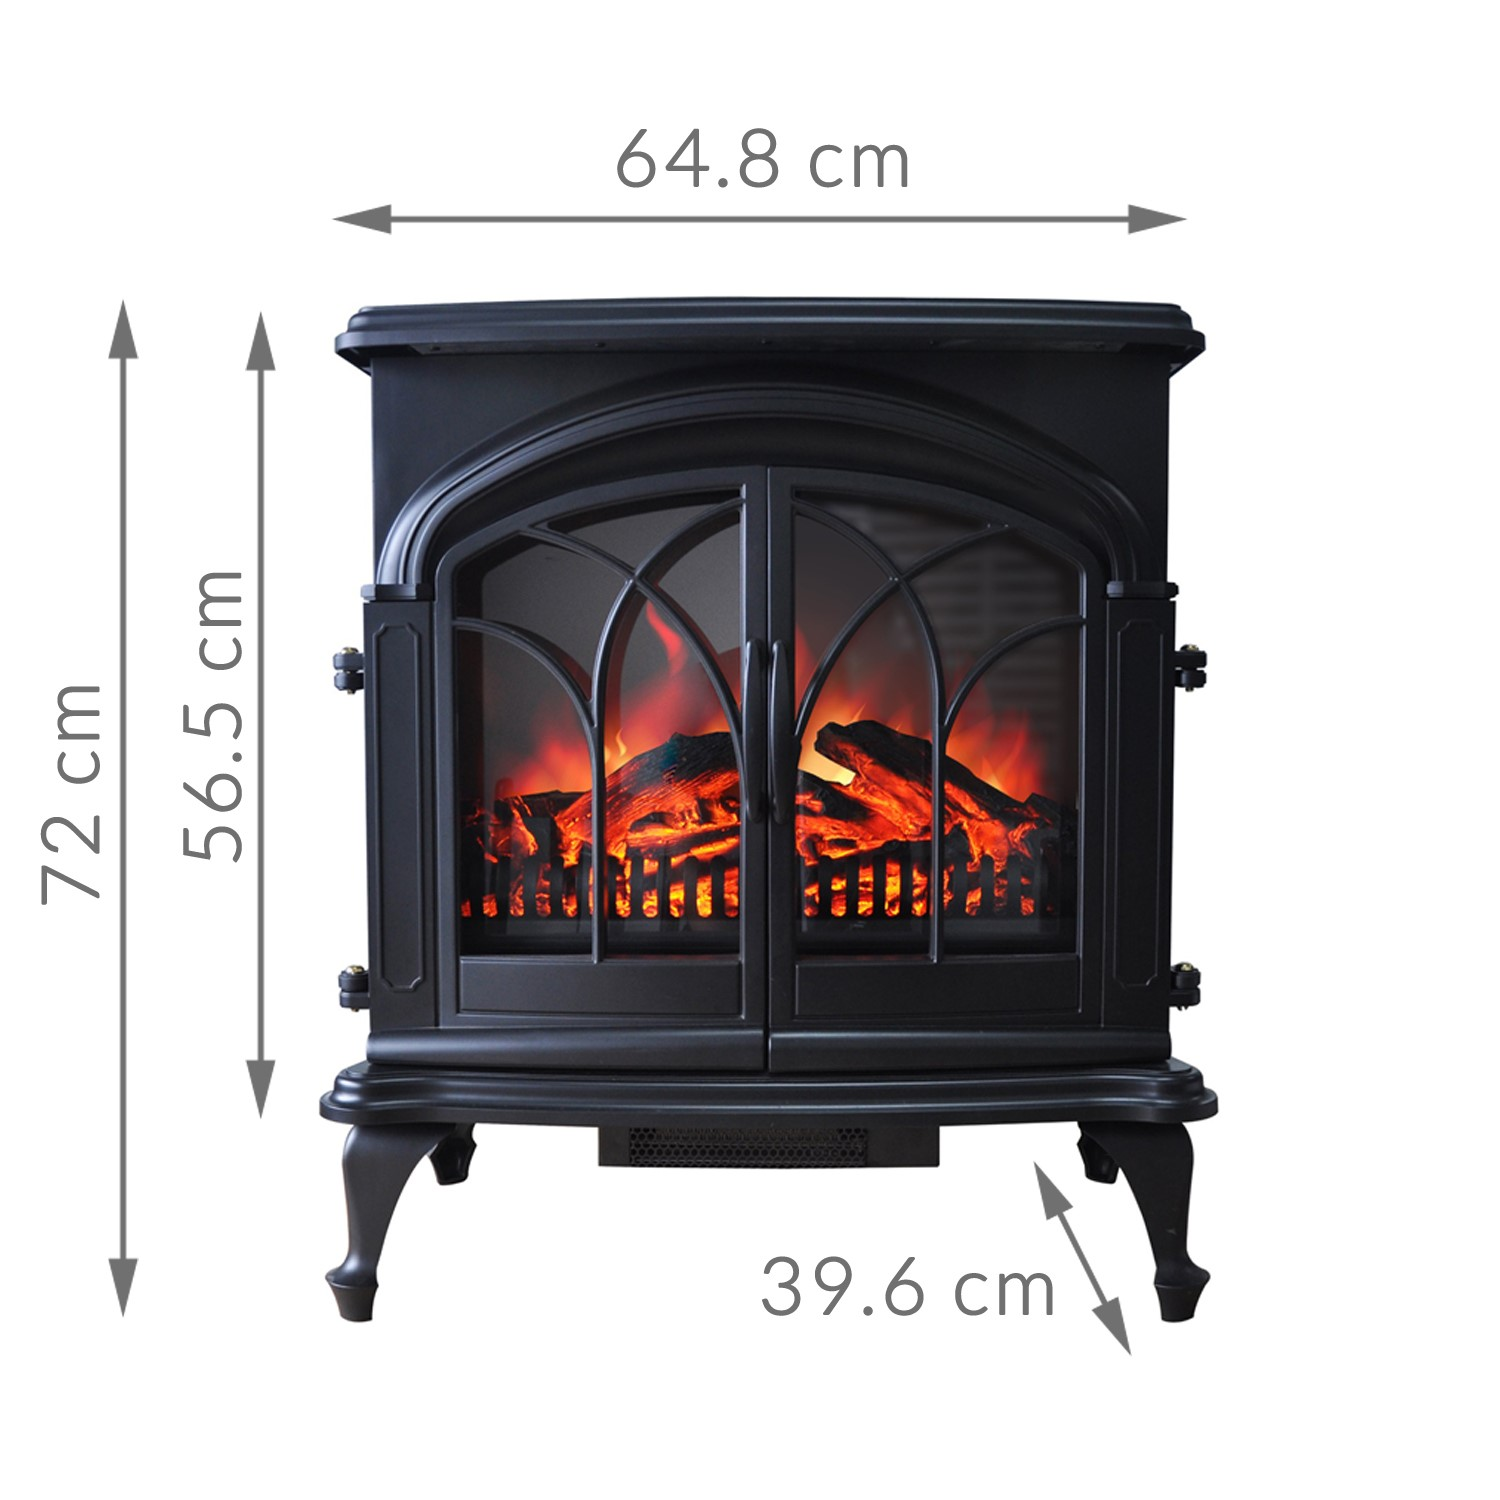 2KW ELECTRIC FIREPLACE Heater Black